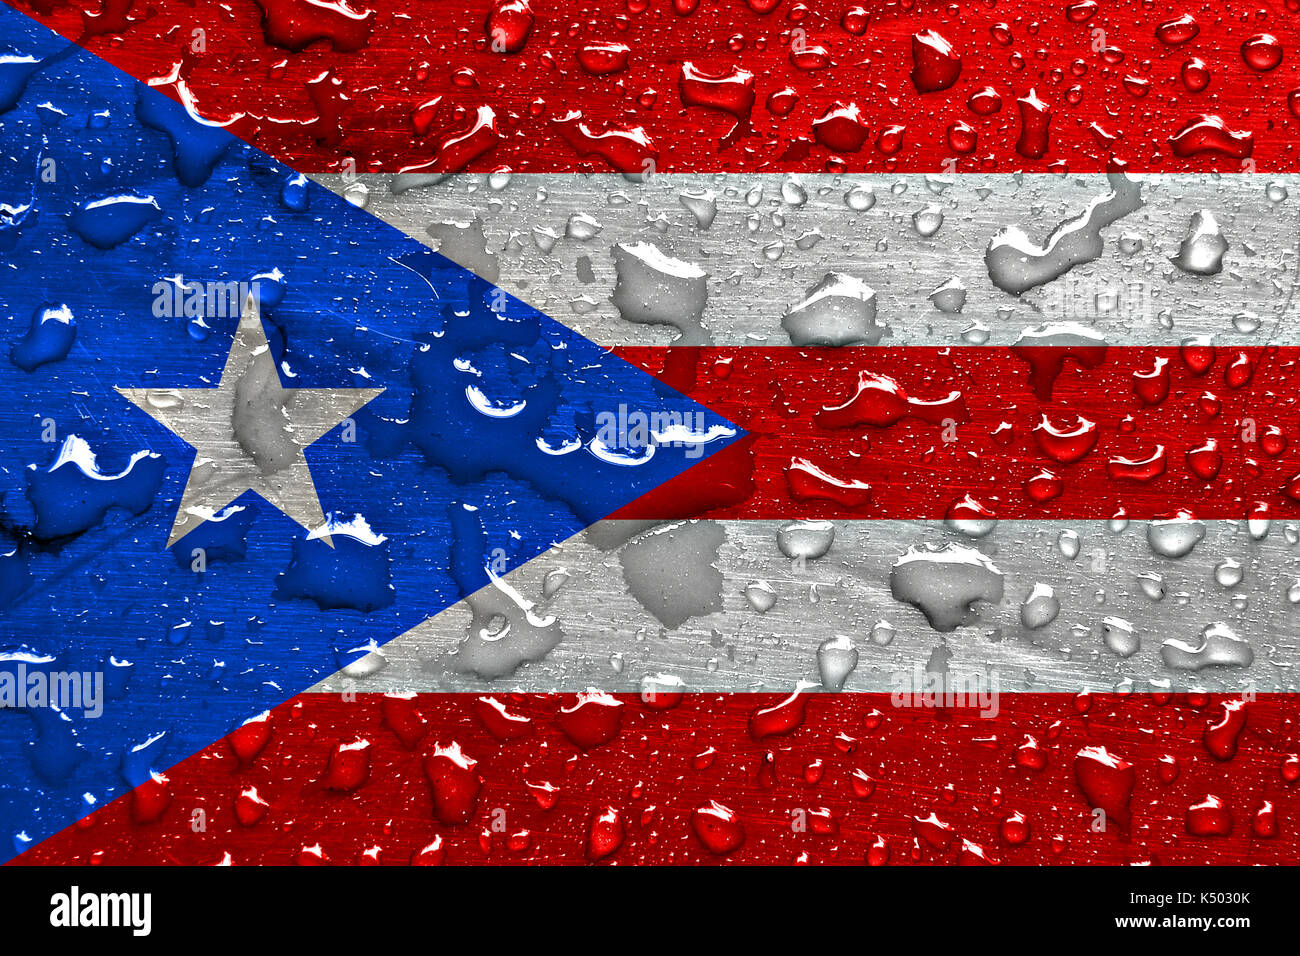 Puerto rican national flag stock photos puerto rican national flag of puerto rico with rain drops stock image biocorpaavc Image collections